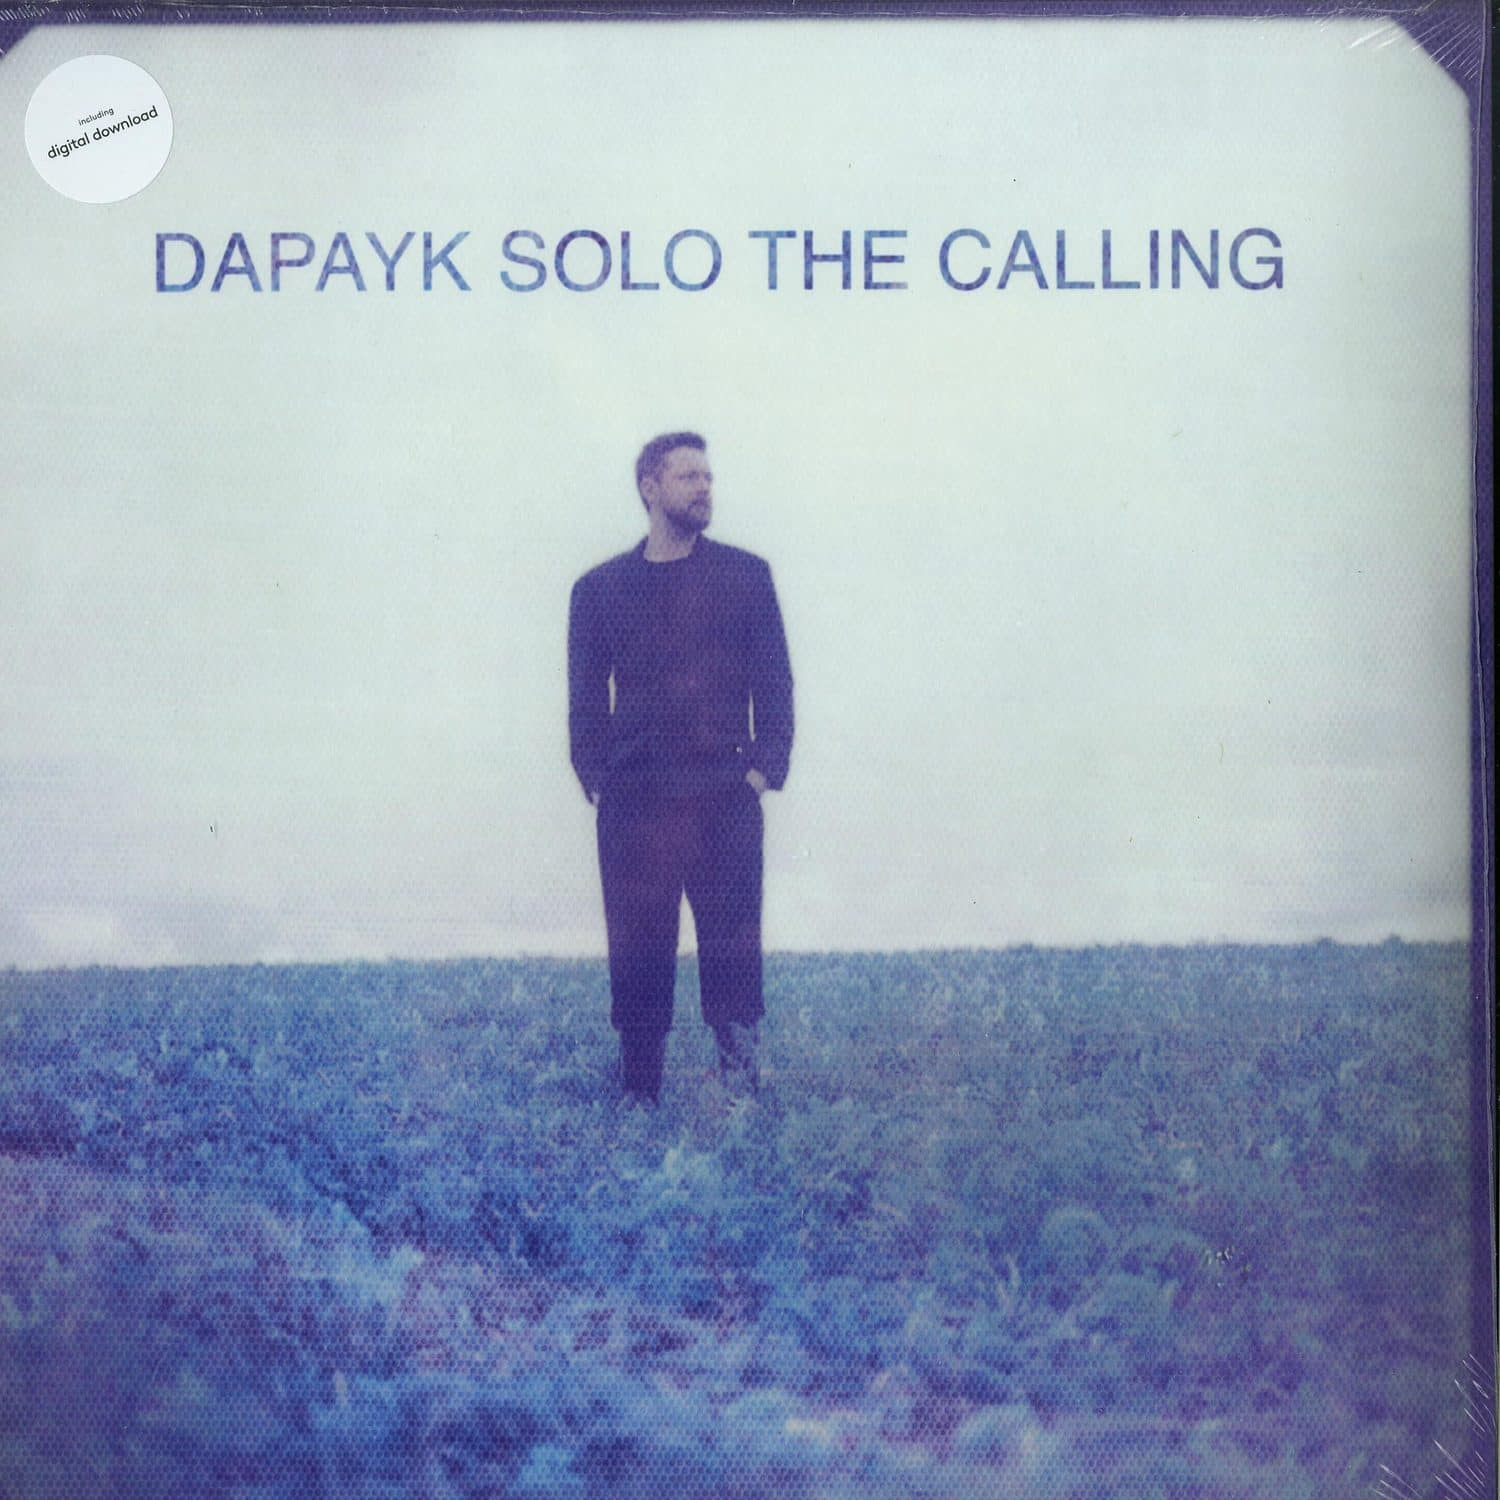 Dapayk Solo - THE CALLING